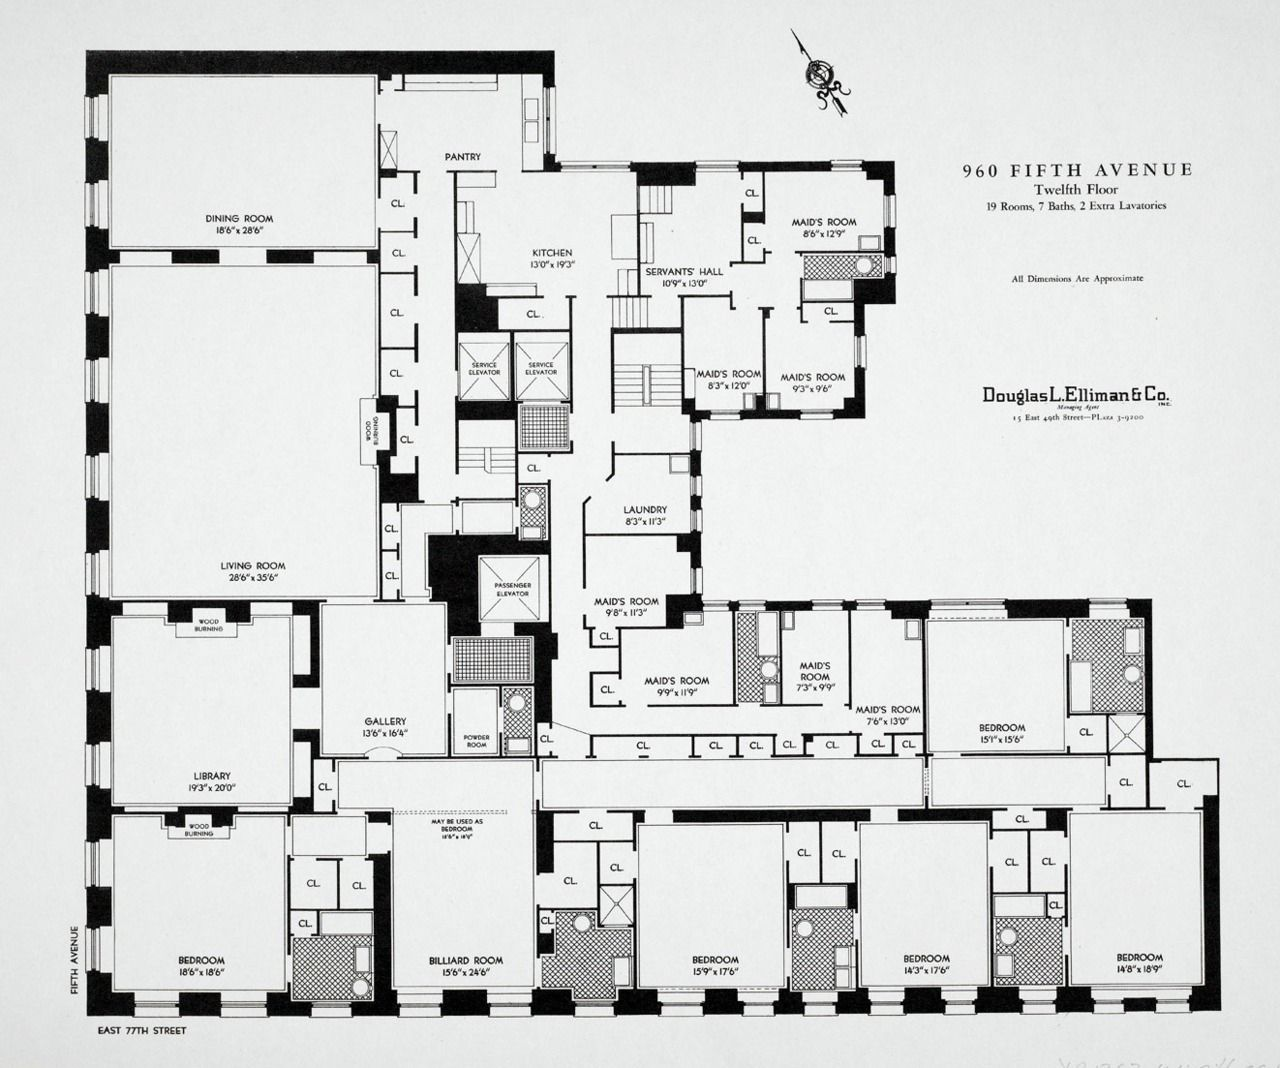 Floorplan of a typical appartment, 960 Fifth Avenue, New York Seven ...